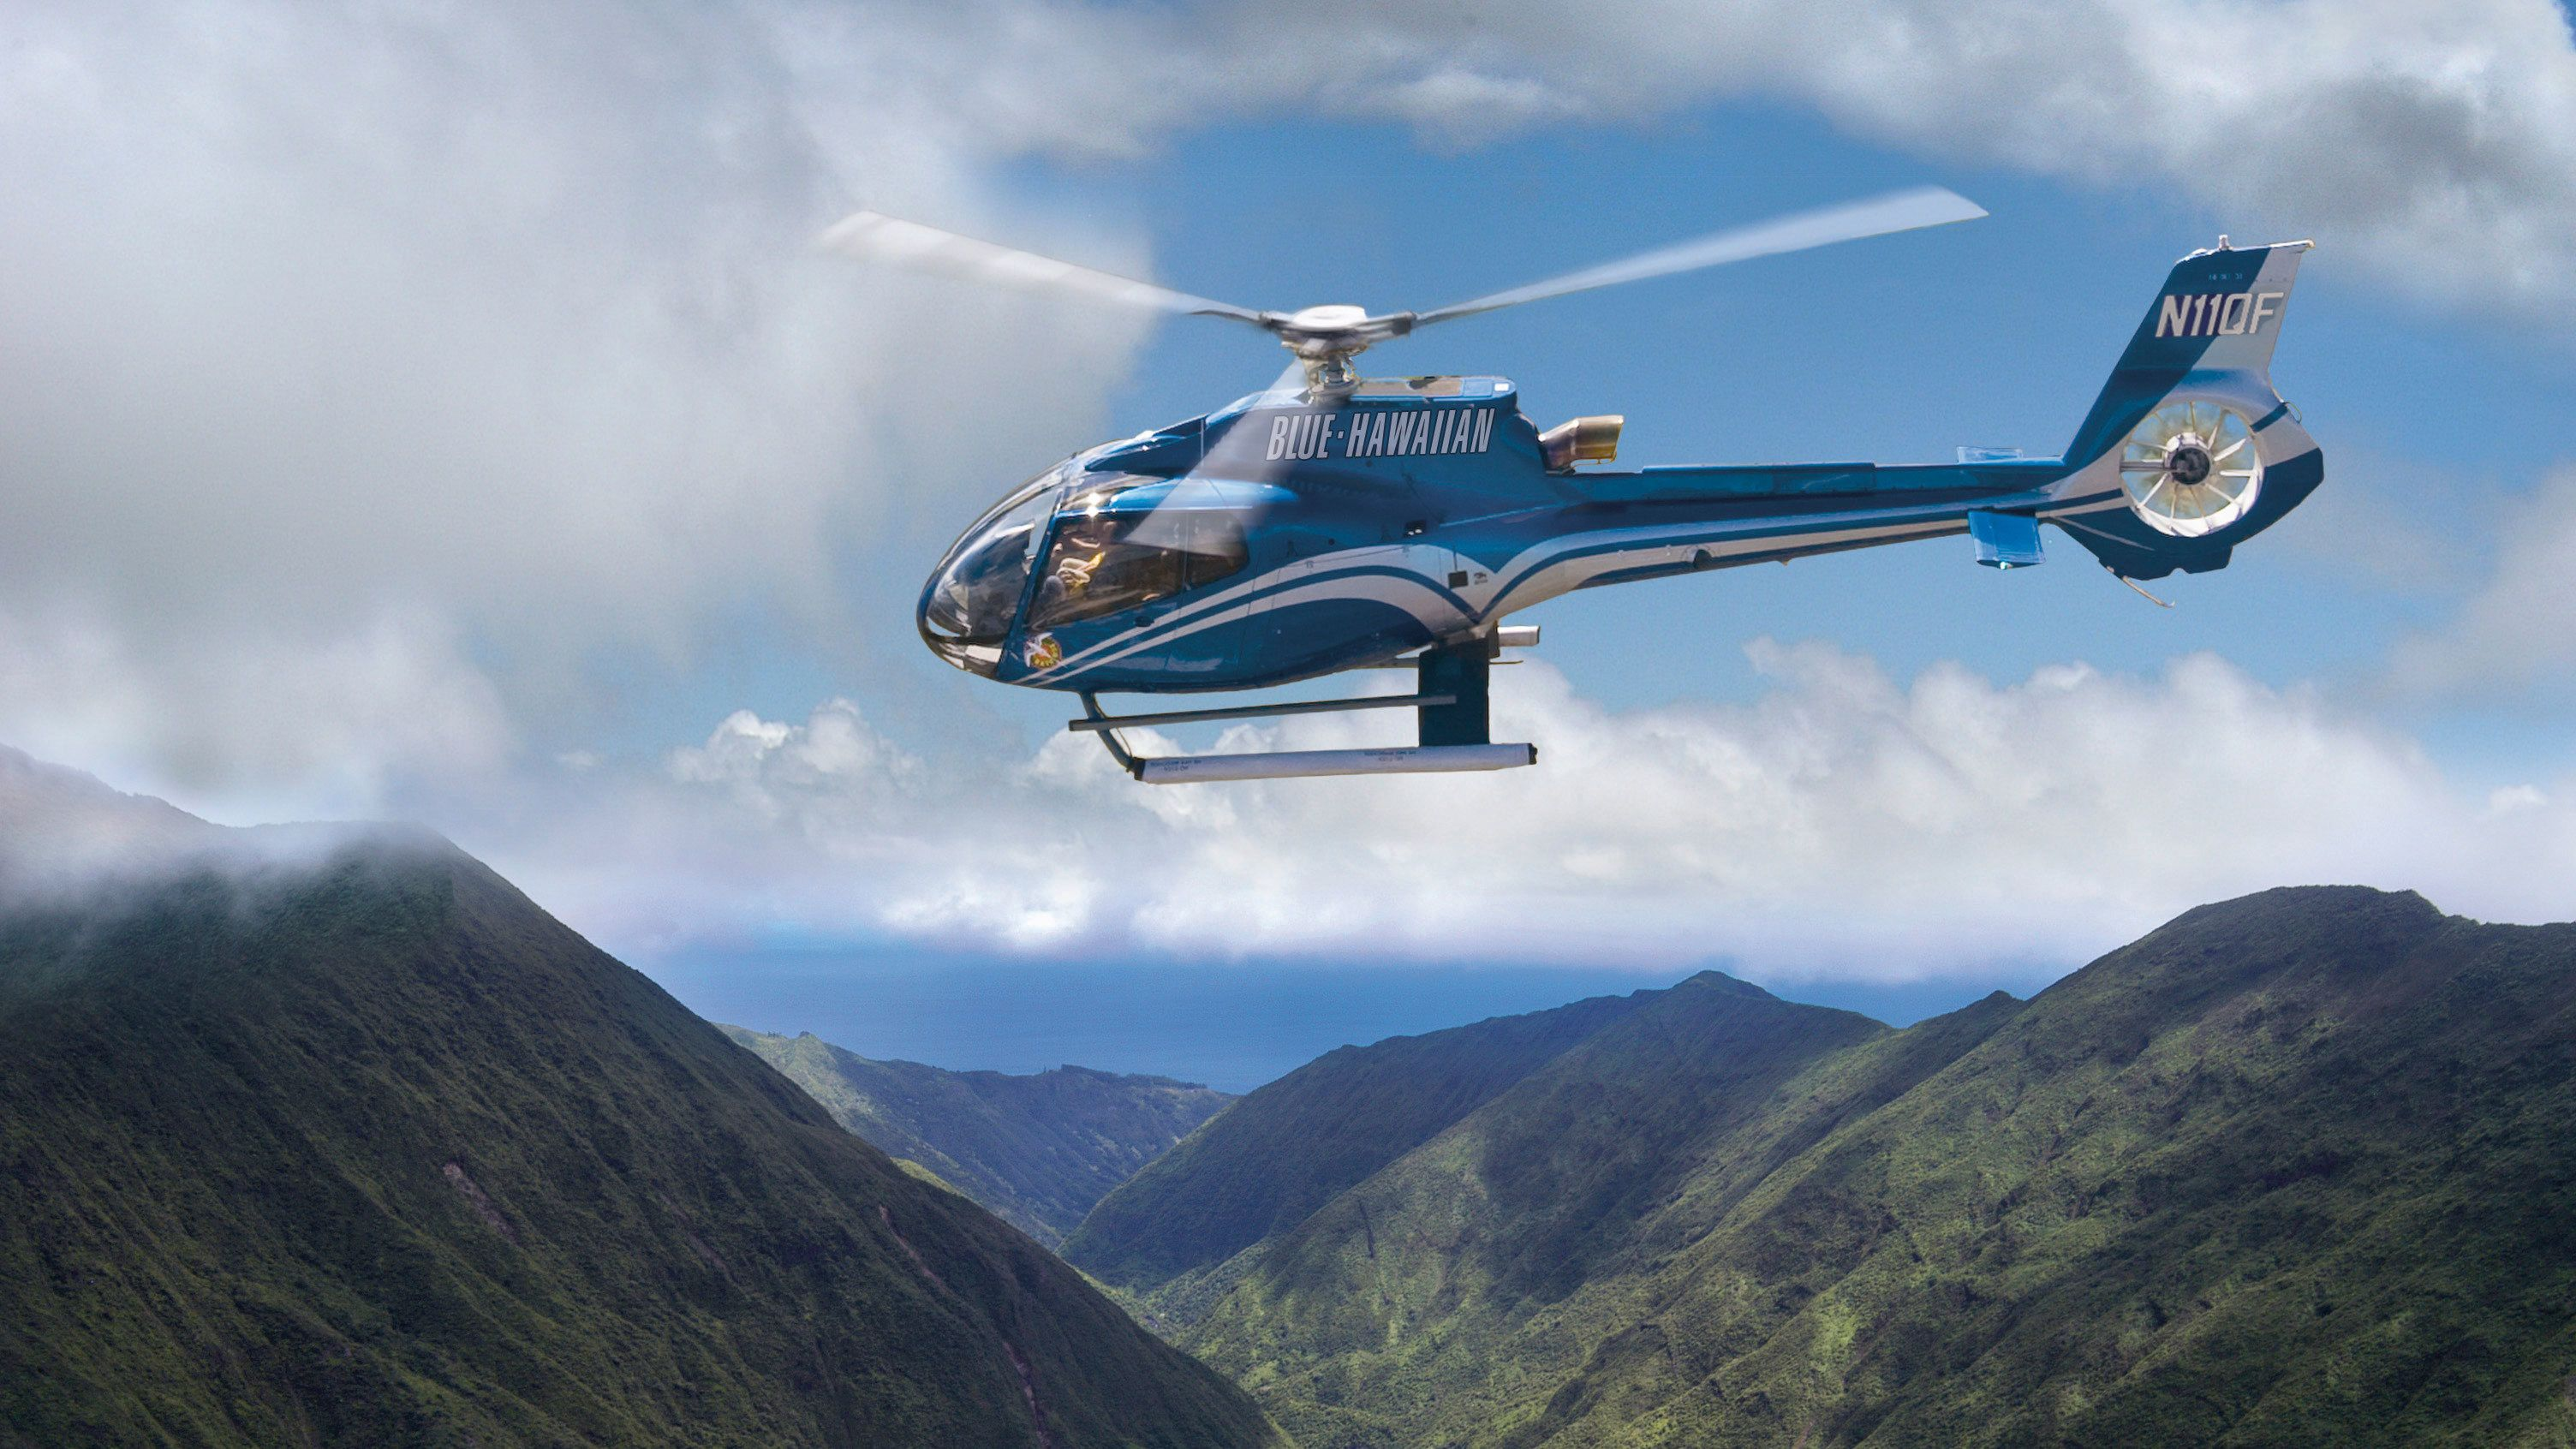 Breathtaking aerial views await you in this helicopter ride